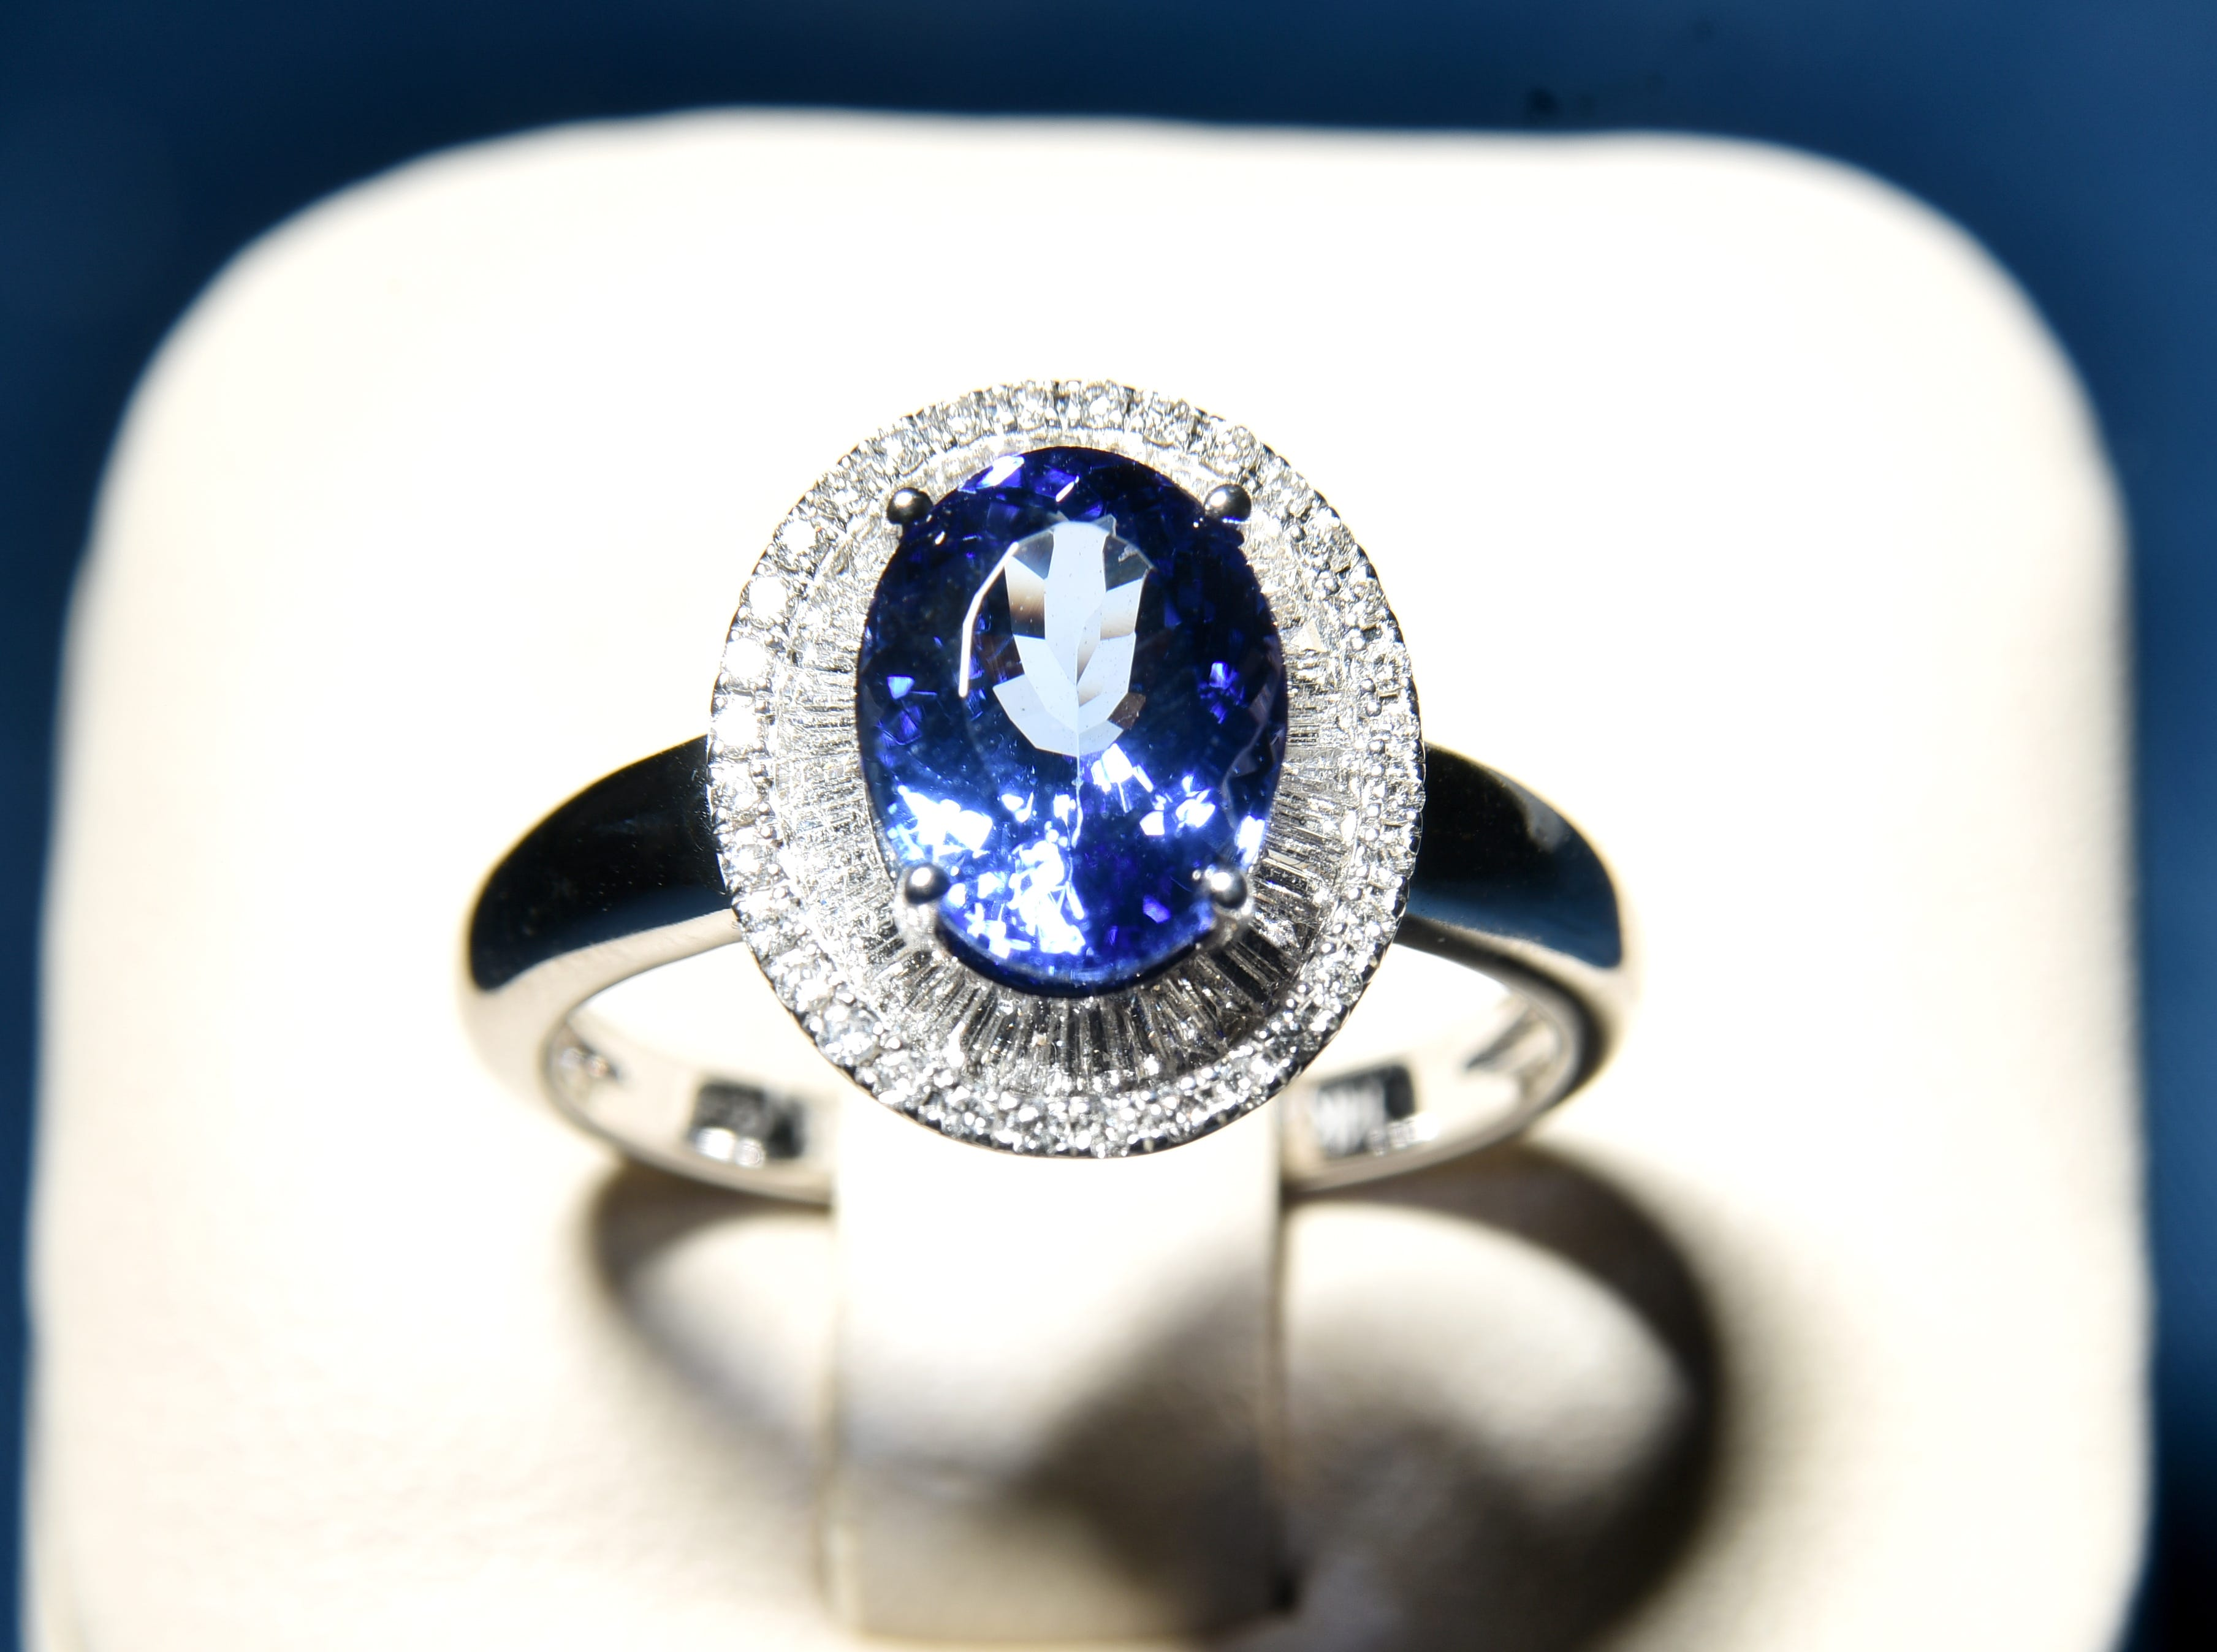 A tanzanite ring from Pace Jewelers.